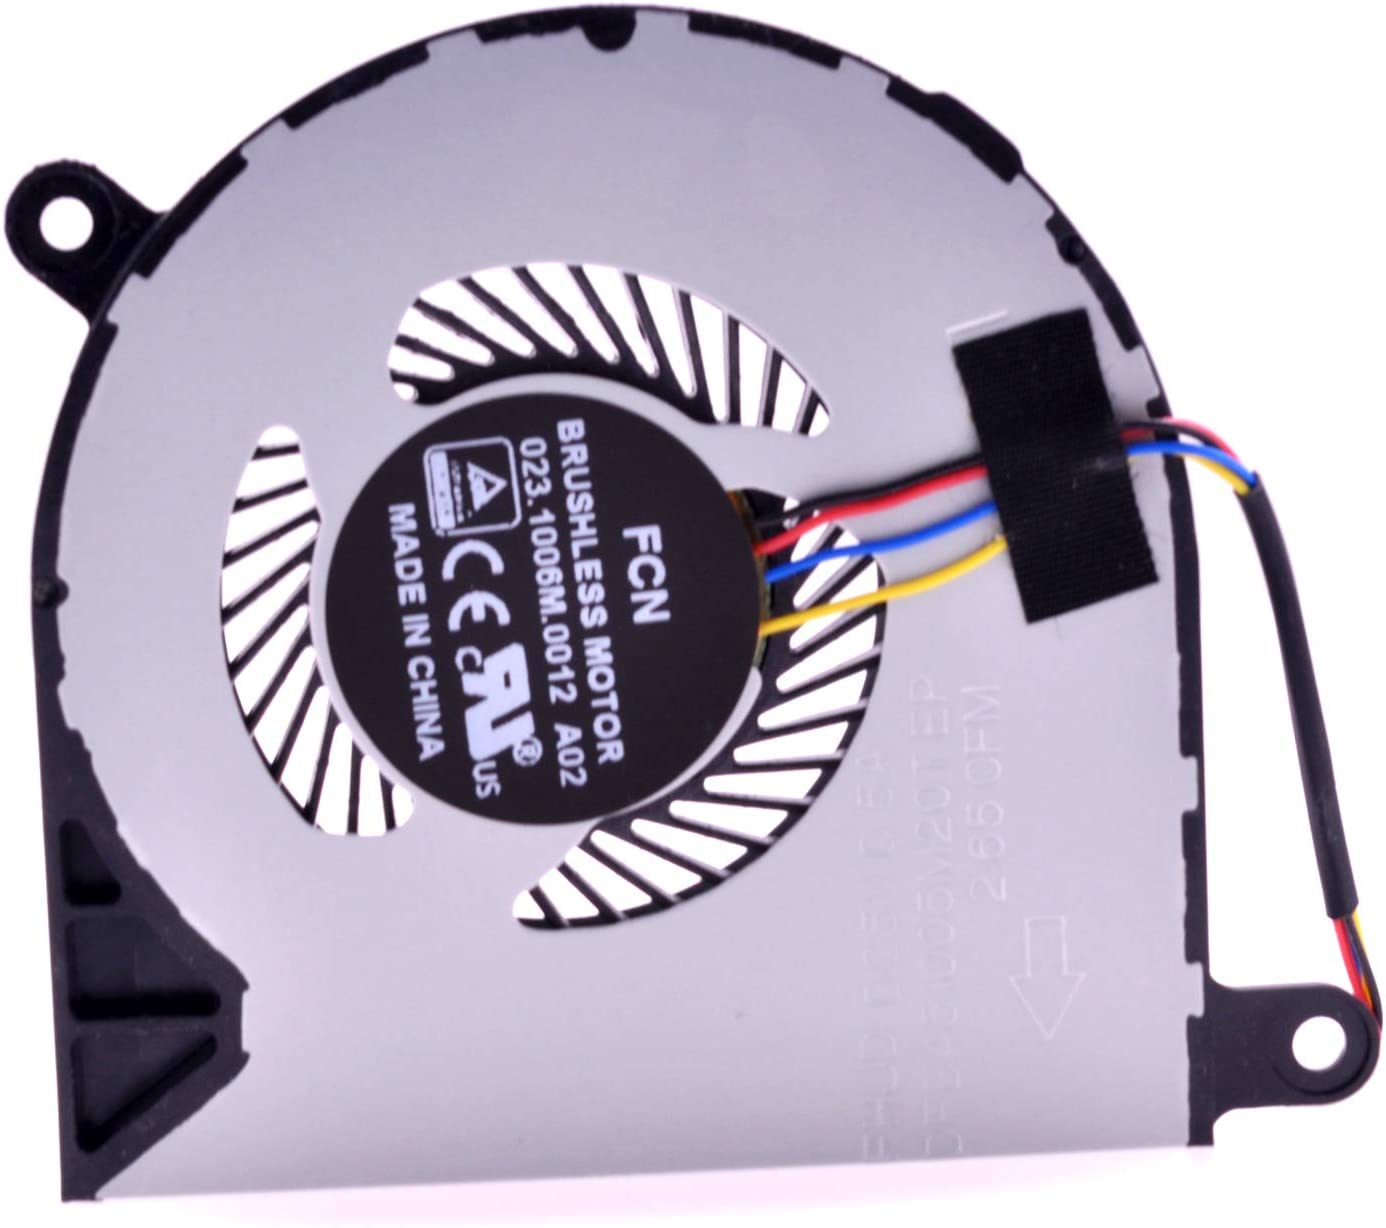 PartEGG CPU Cooling Fan Replacement for Dell Inspiron 13 5368 5378 5379 5568 7378 Inspiron 15-5568 7368 7569 7579 13MF 031TPT 31TPT